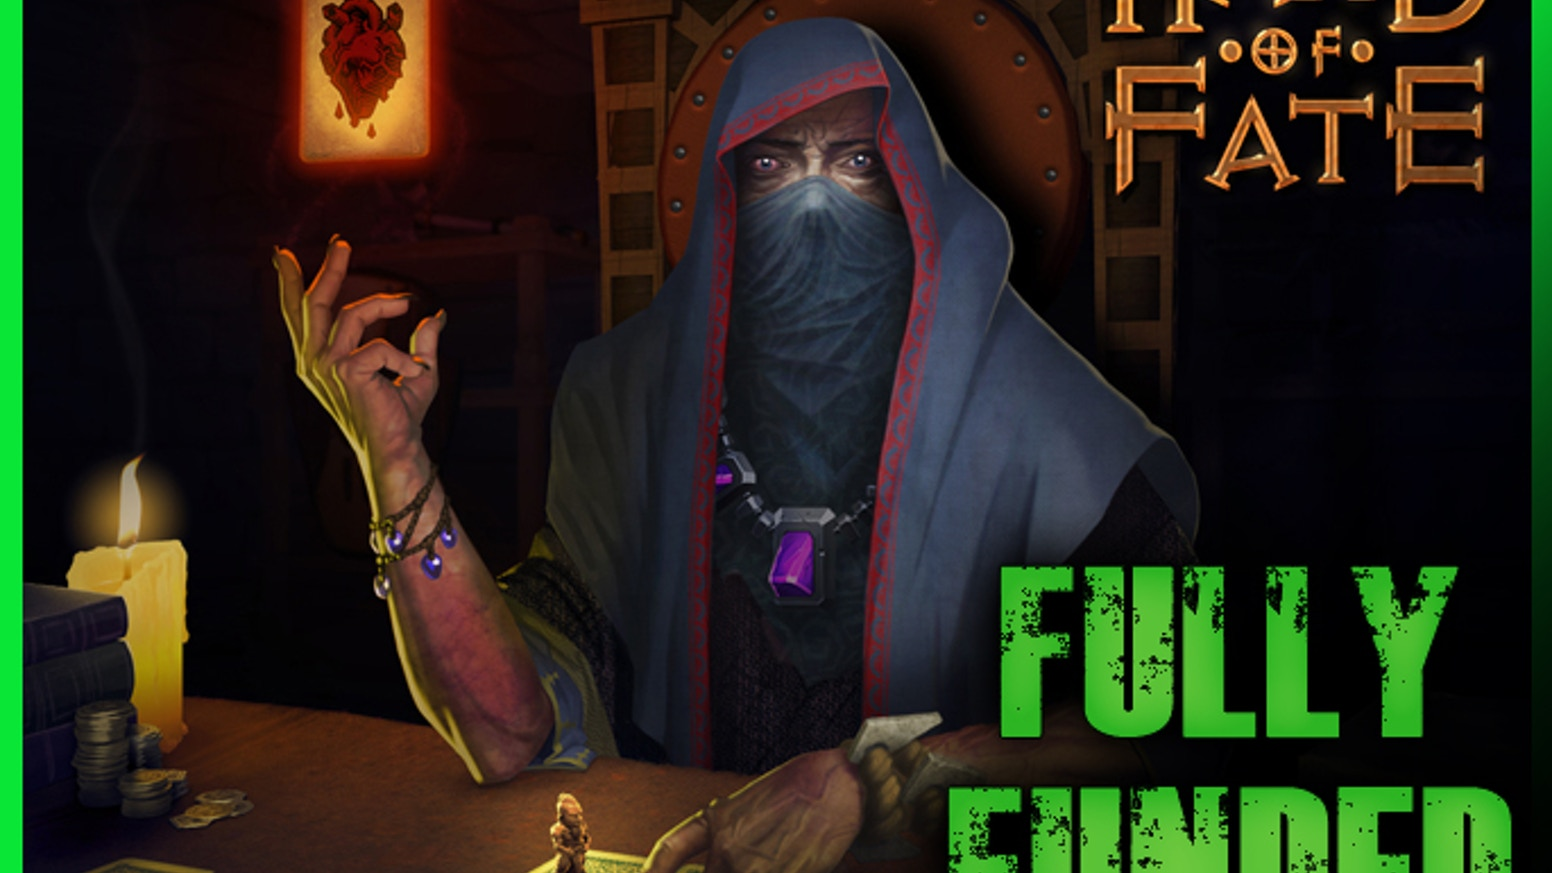 Hand of Fate brings card gaming to video game life.  An infinitely replayable series of quests; build your deck, then try to defeat it!